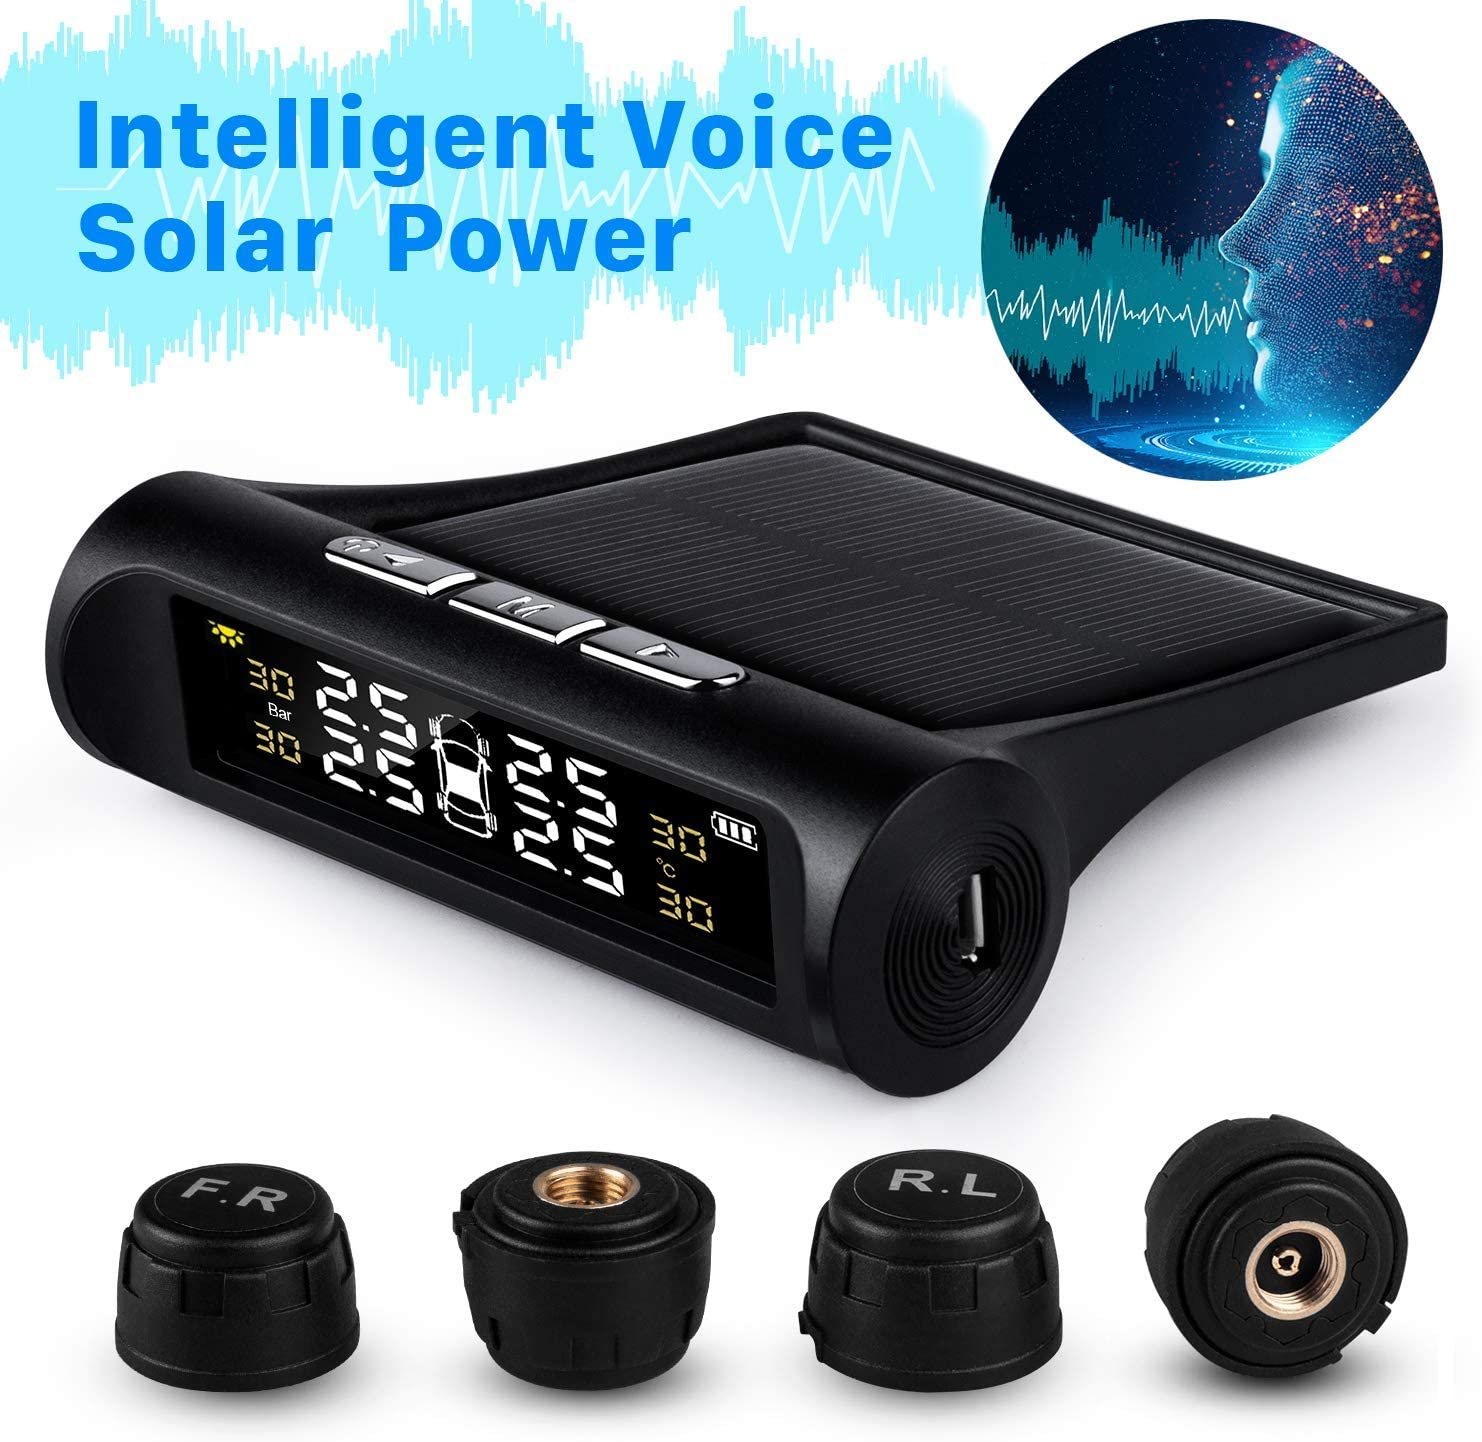 Solar Power TPMS Tire Pressure Monitoring System with 4 External Cap Sensors Real Time Pressure /& Temperature Alerts Ensure Safe Driving 6 Alarm Modes Rocboc Wireless Smart Tire Safety Monitor